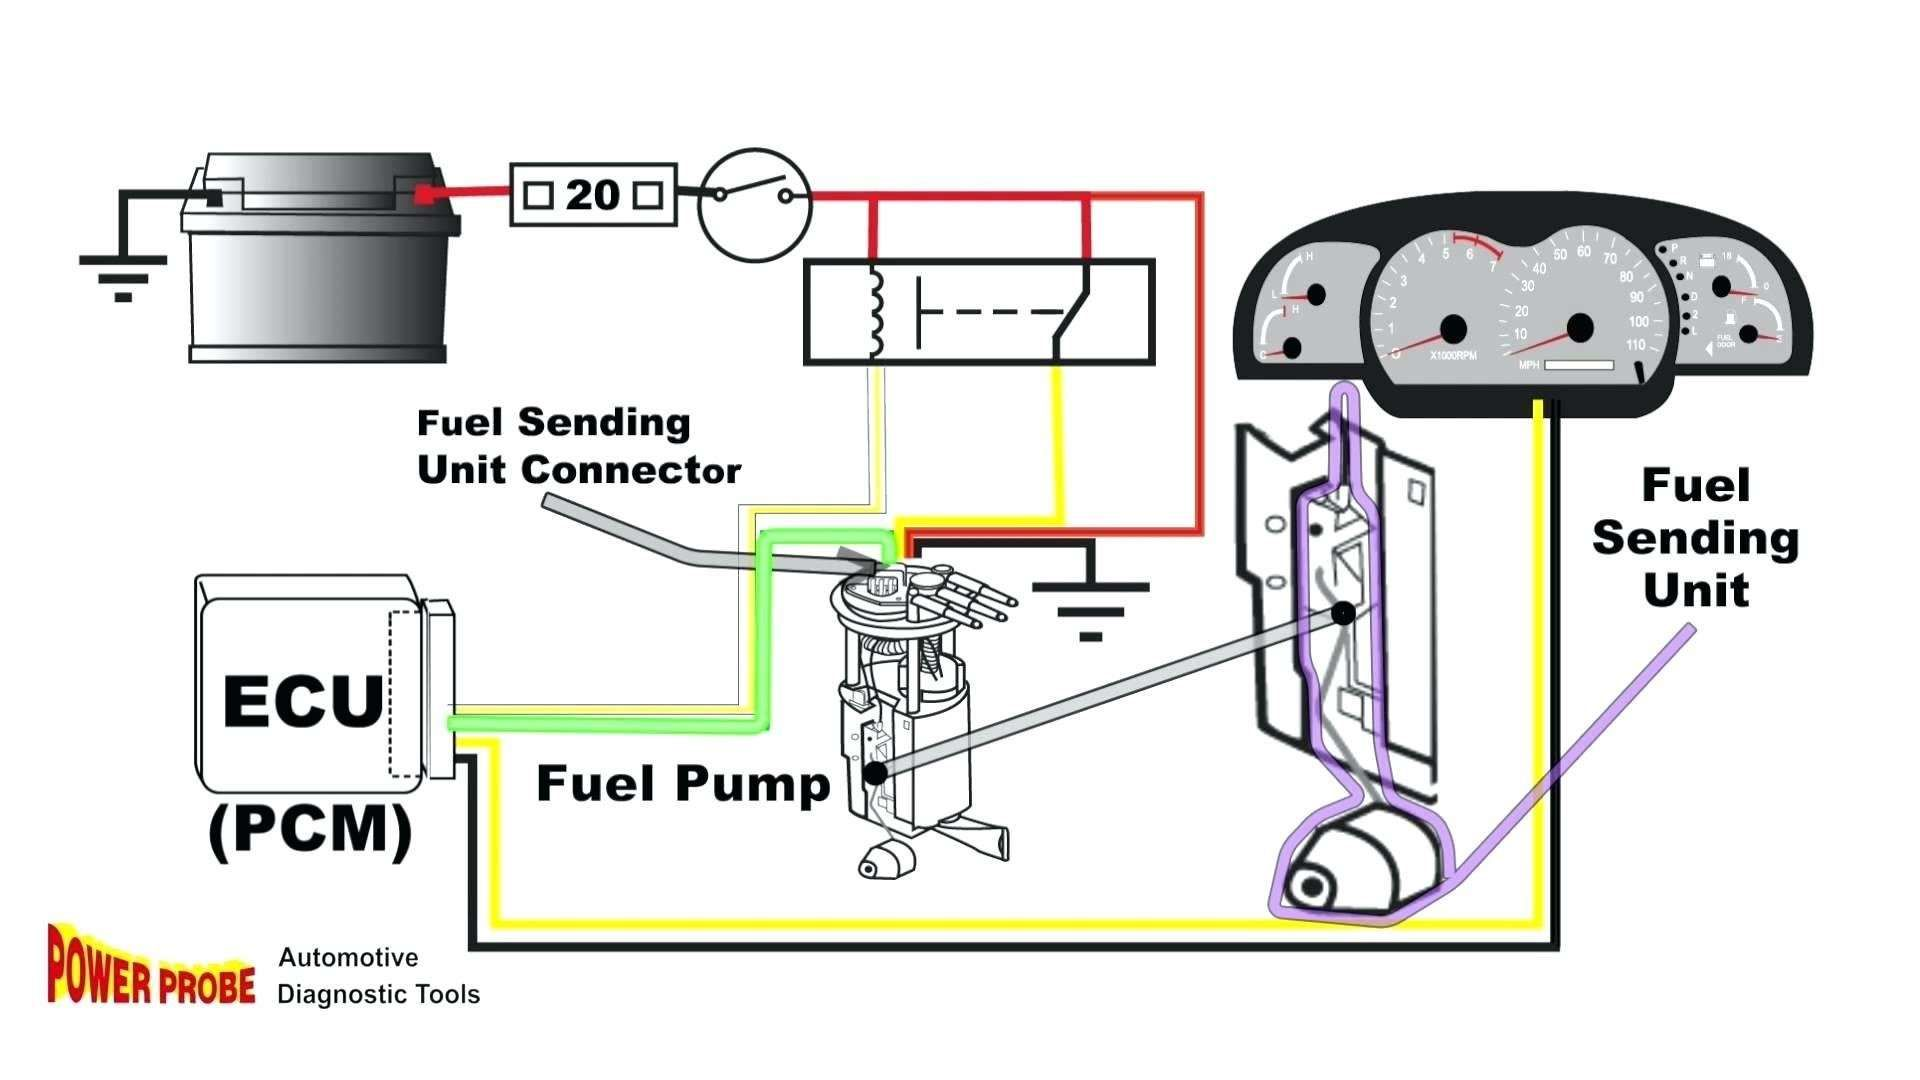 Ford Fuel Gauge Wiring Diagram - Wiring Diagrams Interval  Ford Truck Fuel Gauge Wiring Diagram on